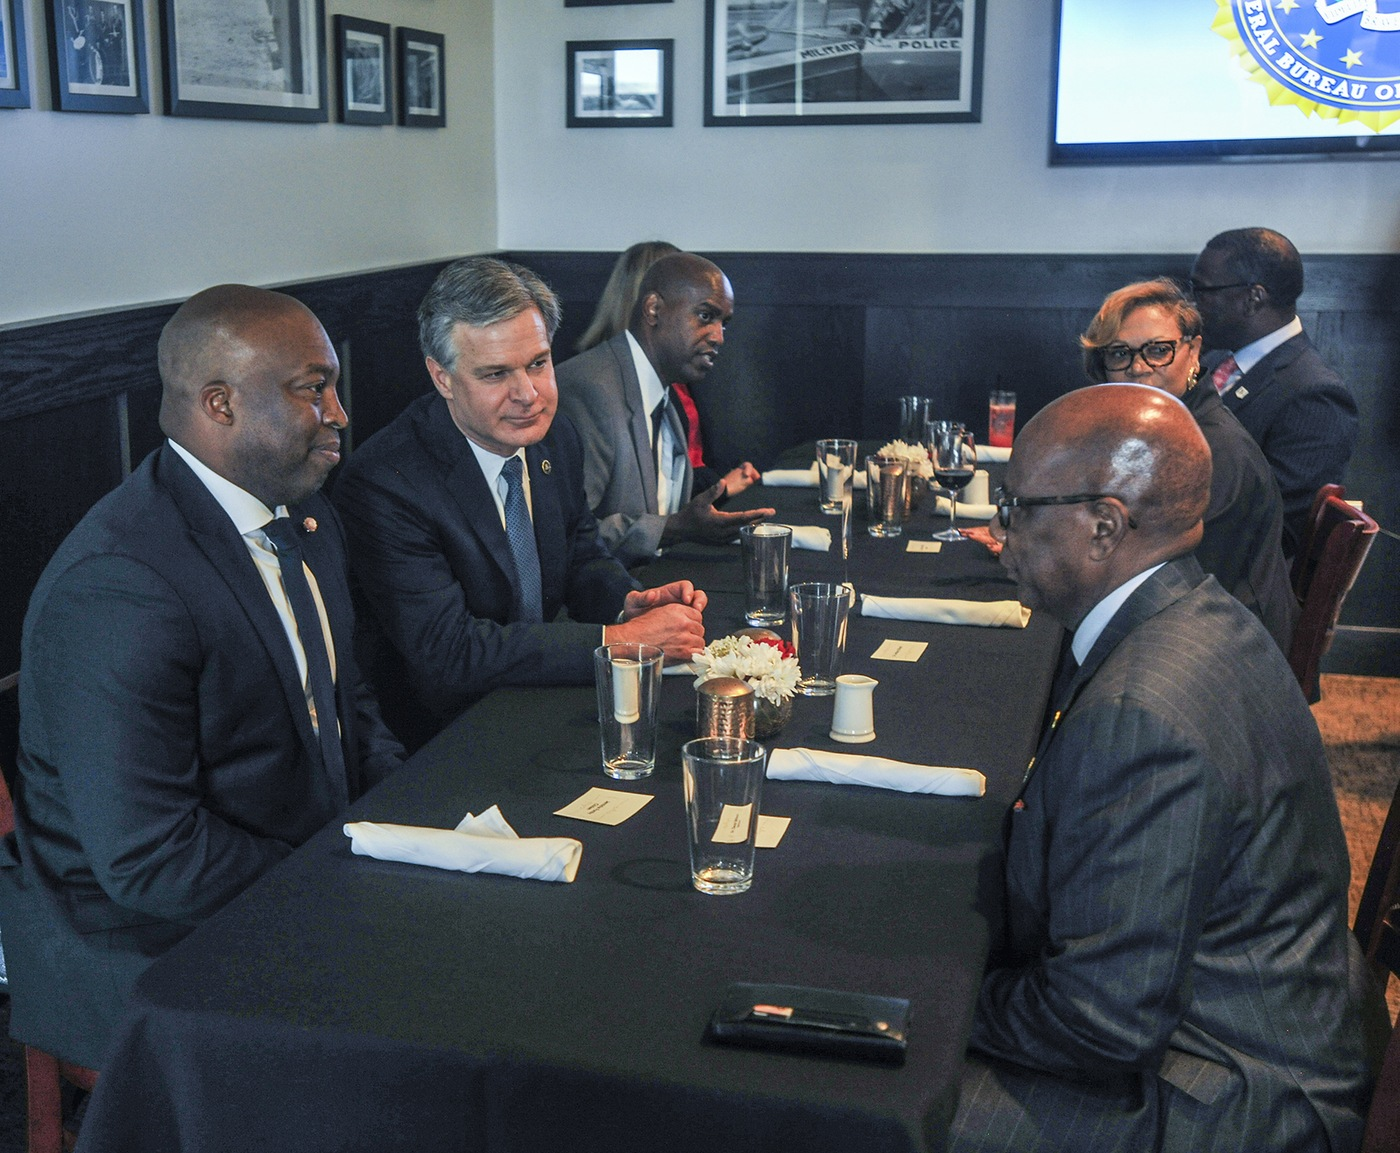 Director Christopher Wray talks with Historically Black College and University officials during a dinner as part of the FBI's Beacon kickoff June 29, 2021.